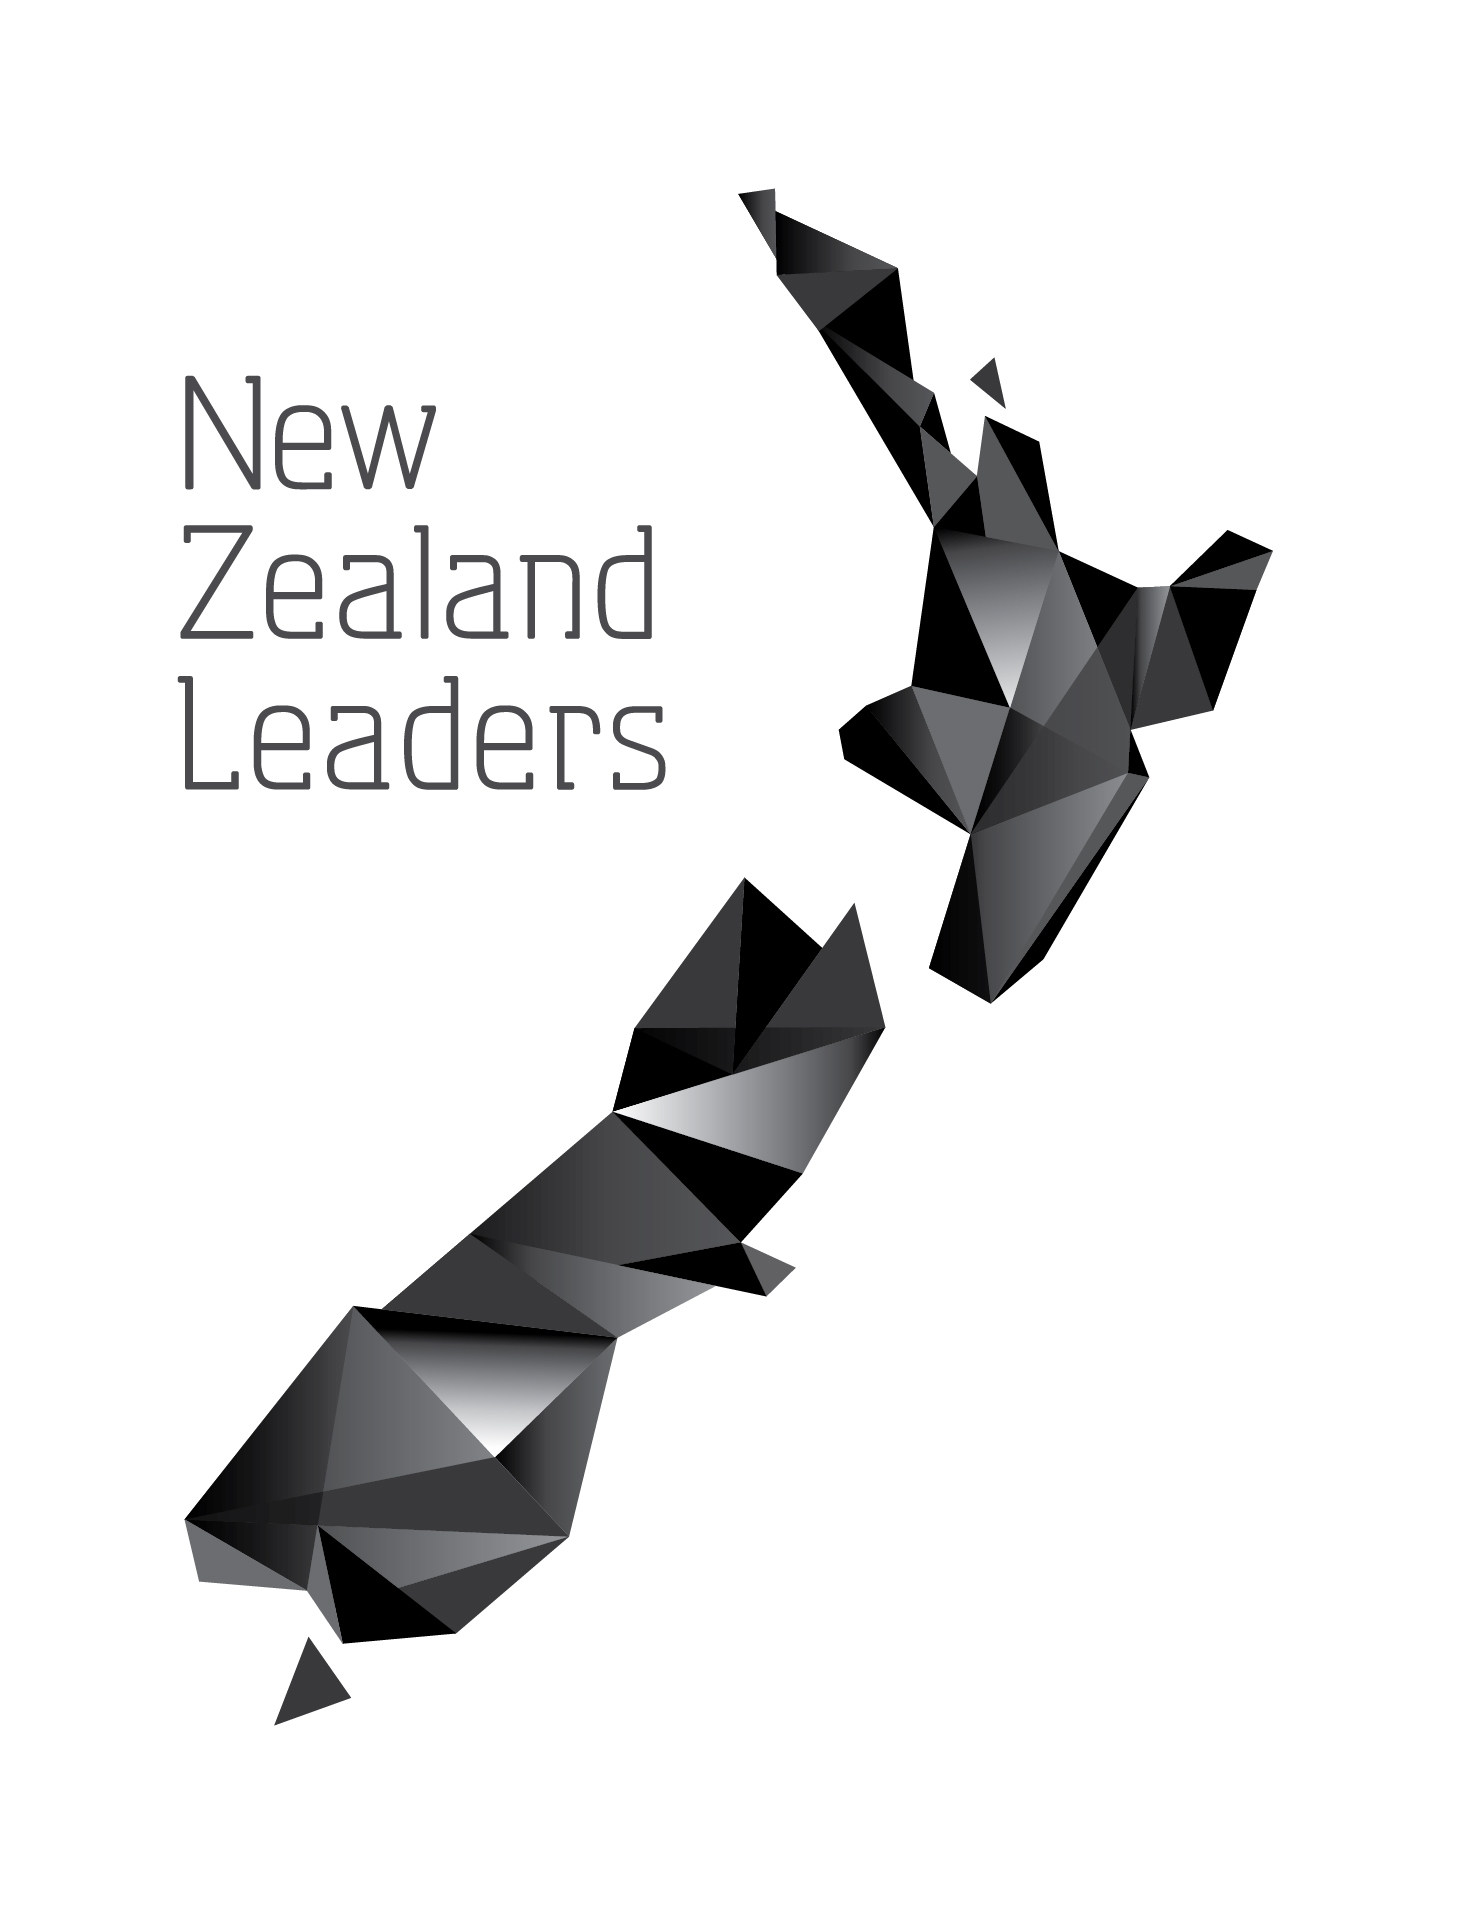 New Zealand Leaders develops pathways for business success